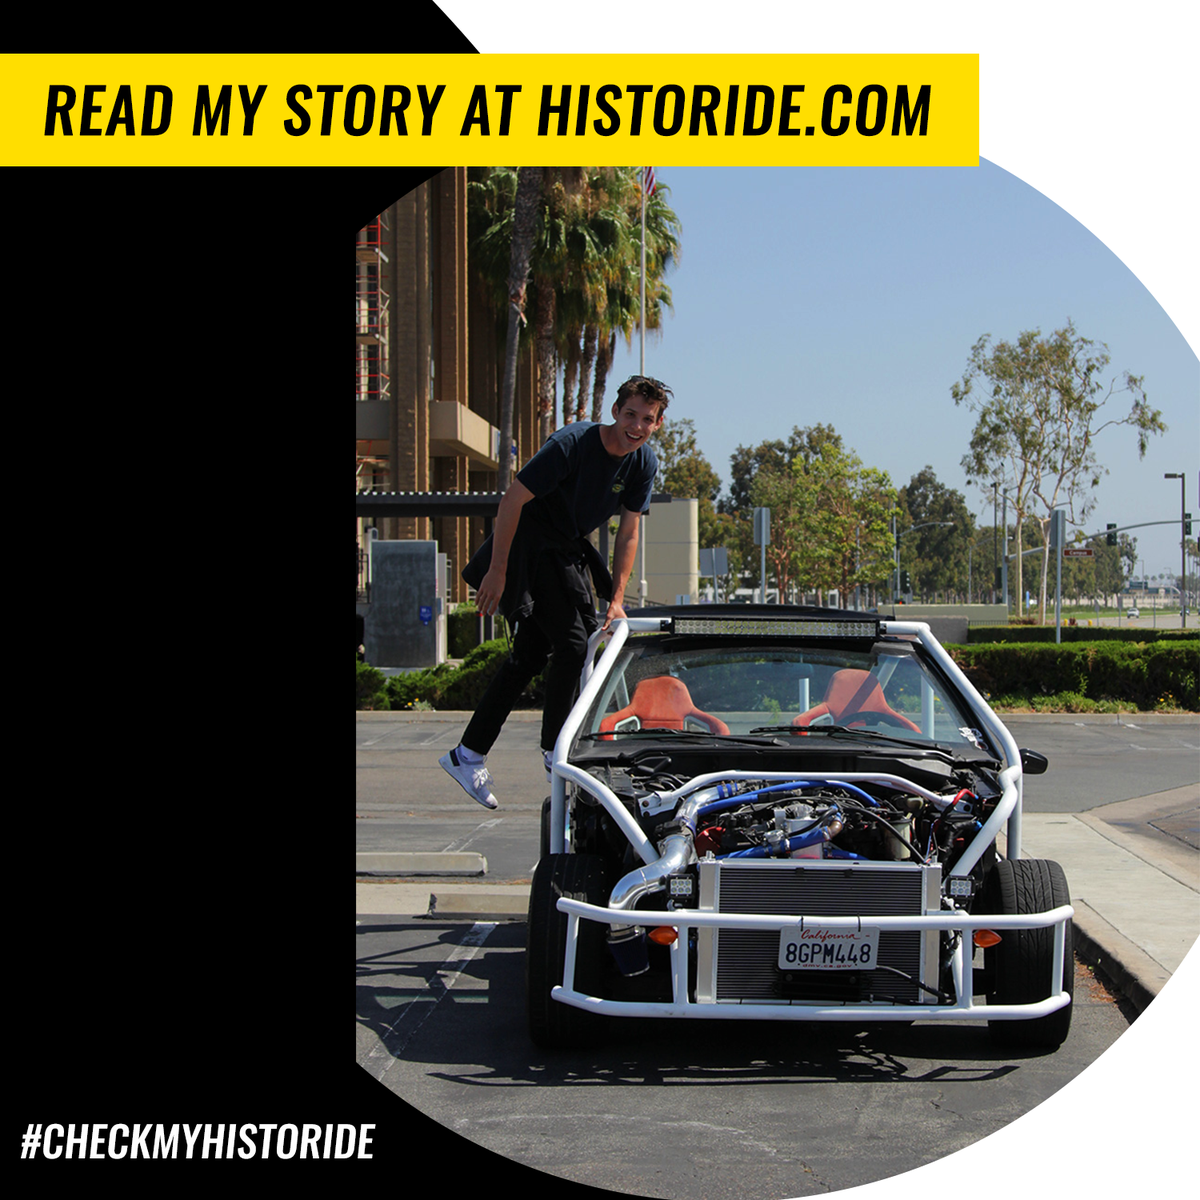 Check my Historide on http://Historide.com  https://www.historide.com/post/the-sophomore-slump-three-san-diego-state-engineers-rebuild-a-totaled-mustang-from-scratch…  Instagram ID: @thestankk  #Historide #CheckmyHistoride #WhatsYourHistoride #cars #car #carsofinstagram #carporn #carlifestyle #supercars #photography #instacar #carswithoutlimits #automotive #racing #turbopic.twitter.com/hxkUq1kImq